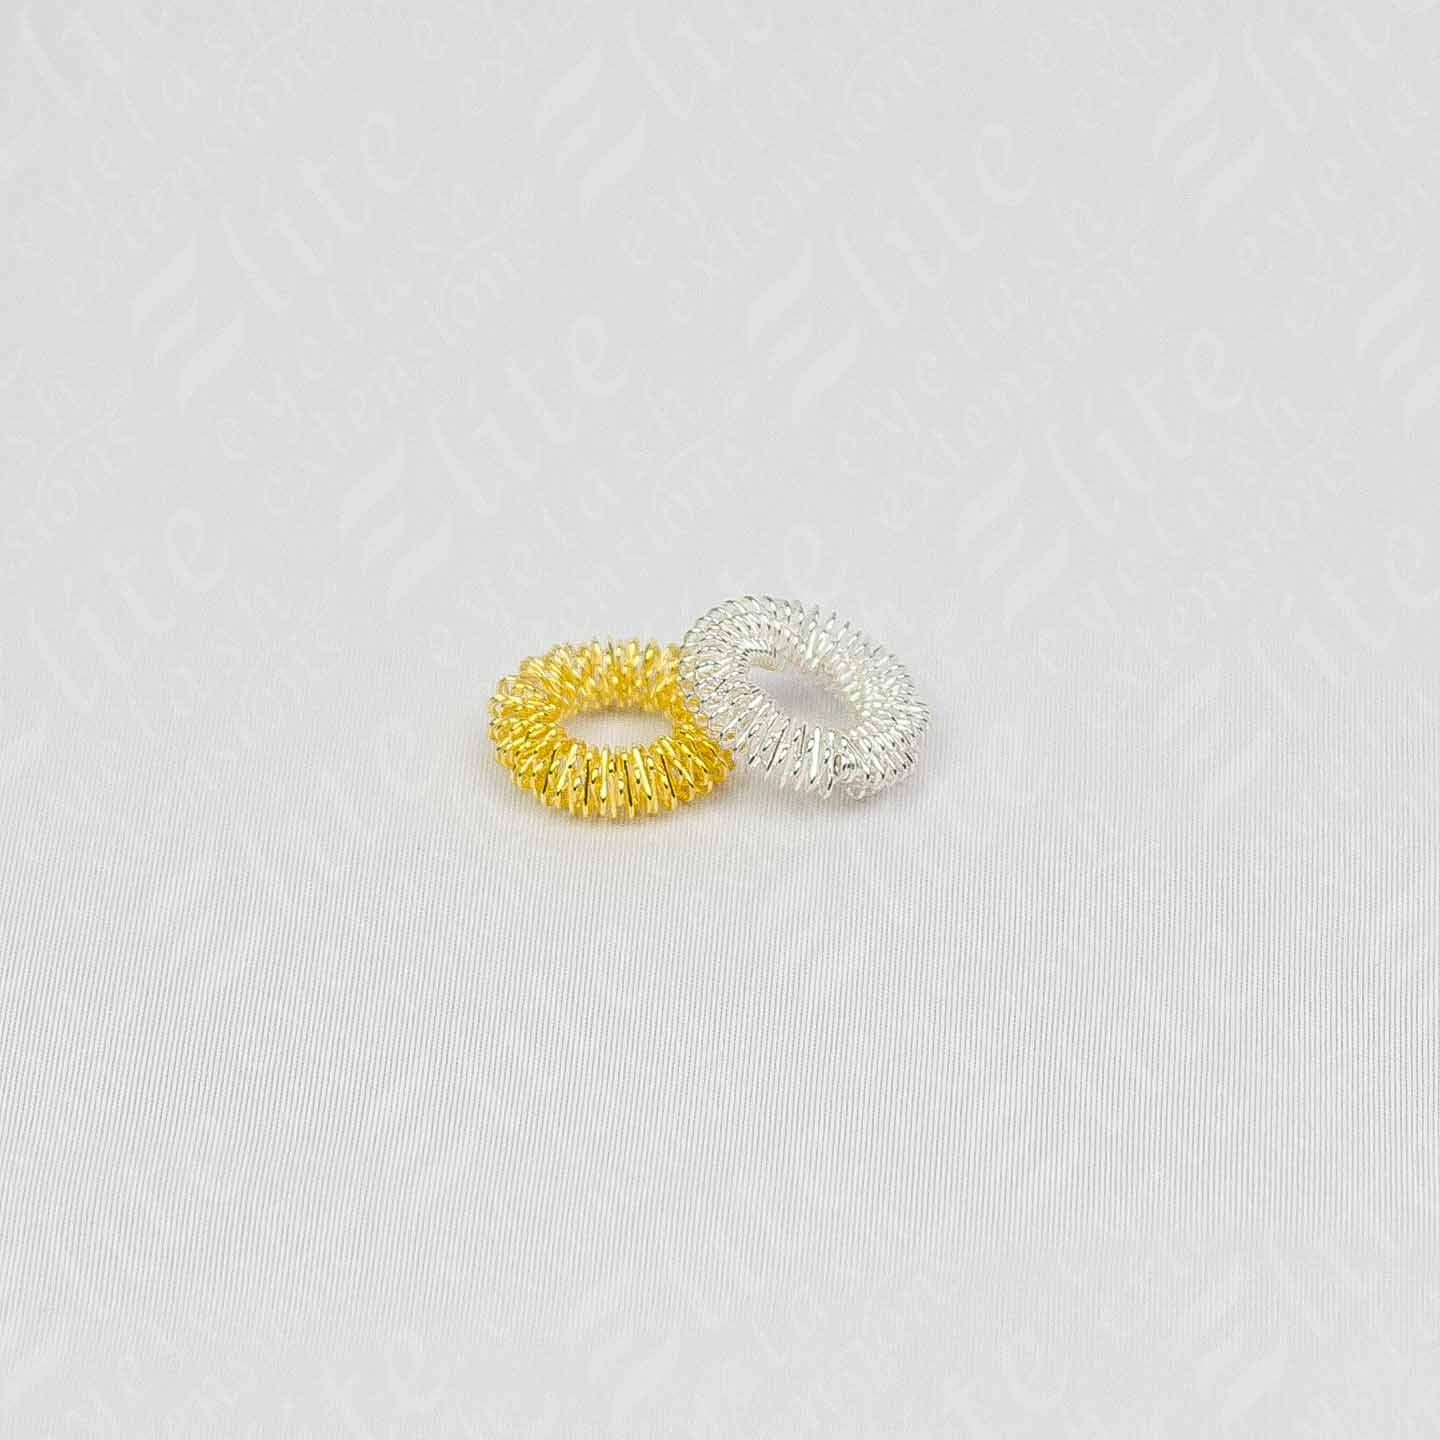 Elite-Eyelash-Extensions-Accessories-Accupuncture-rings-2